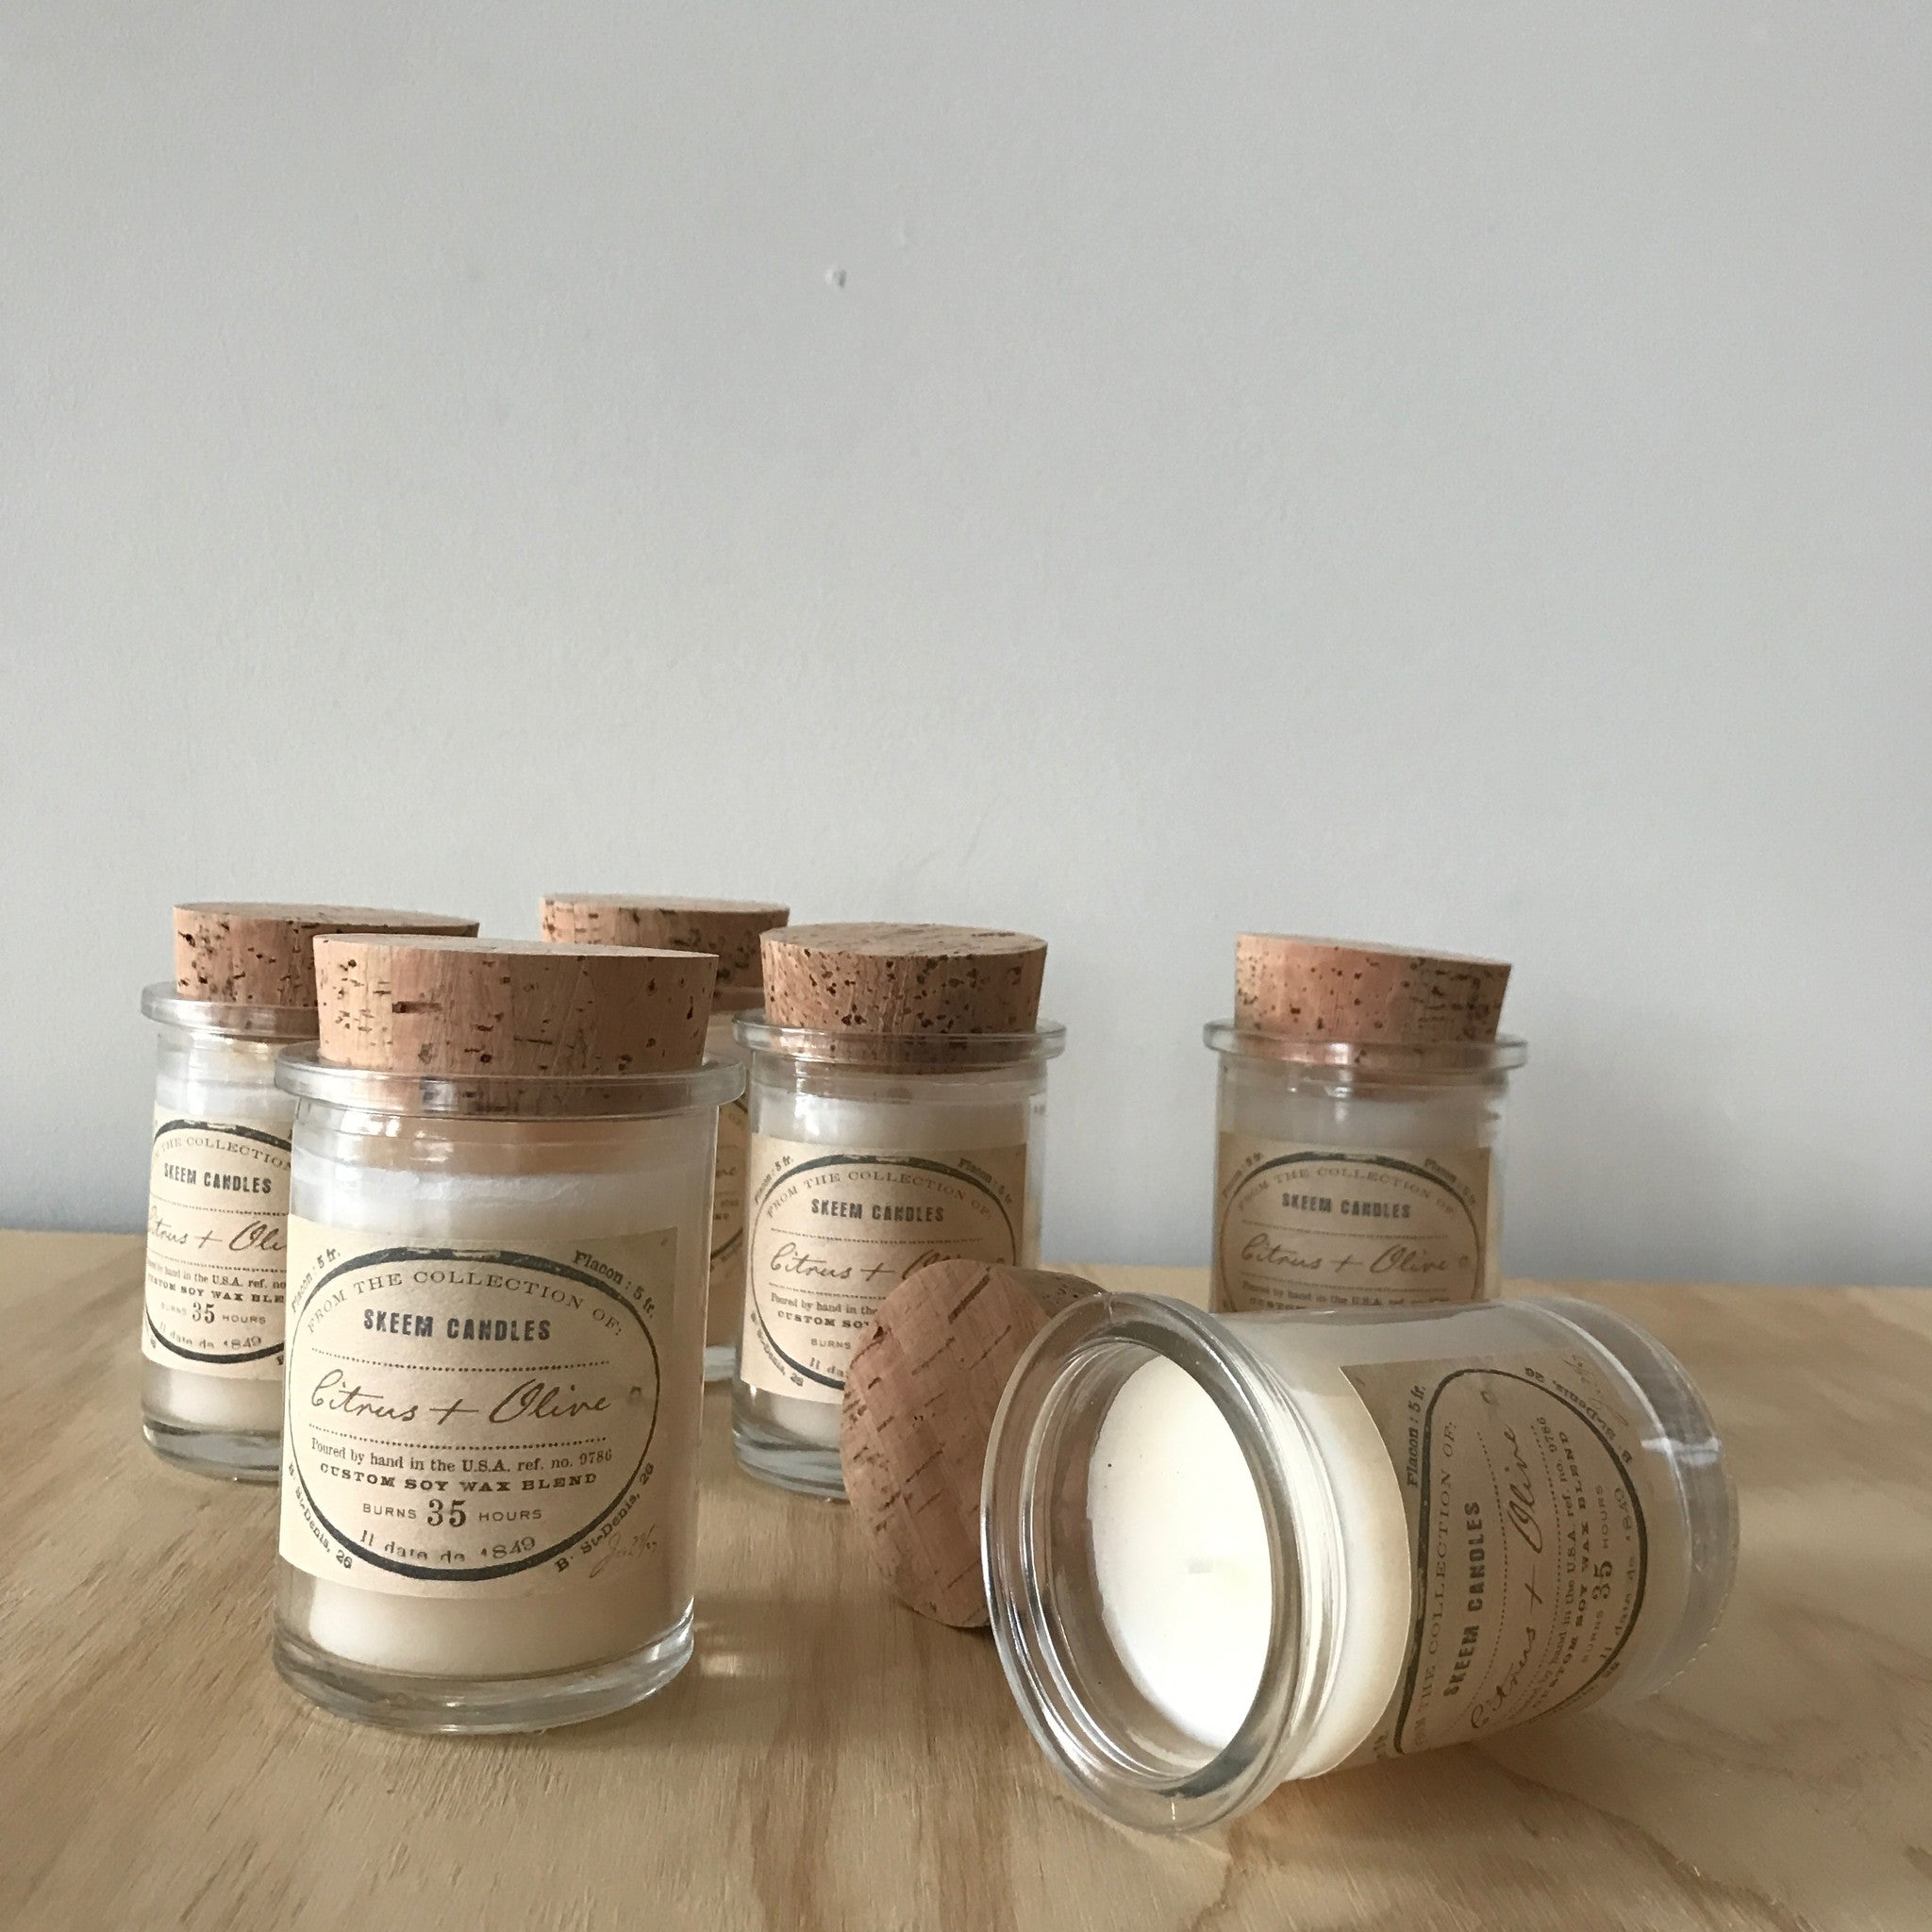 Citrus & Olive Field Jar Candle by Skeem Design - Upstate MN